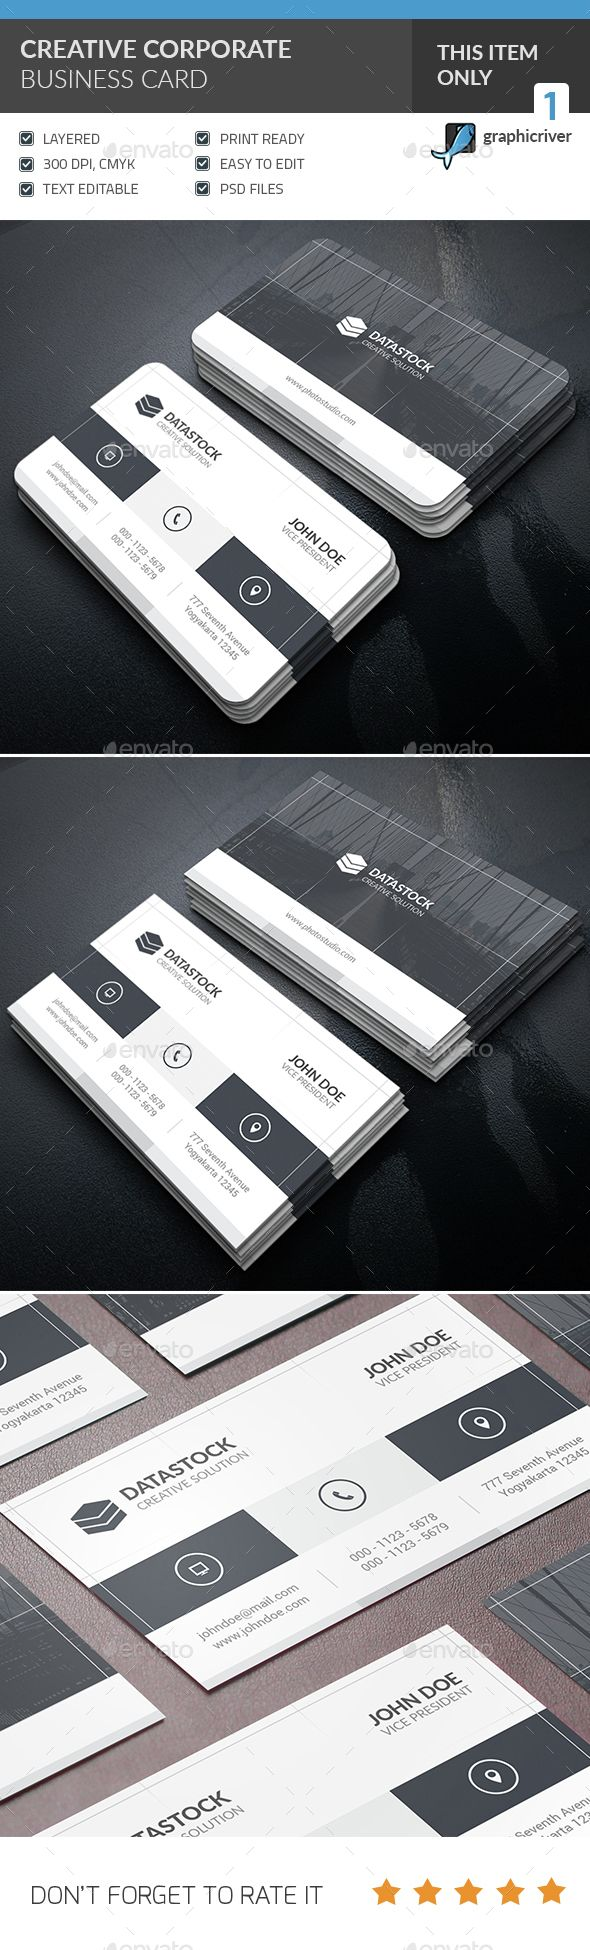 1215 best tarjetas de presentacin images on pinterest business creative corporate business card photoshop psd horizontal company available here https reheart Choice Image